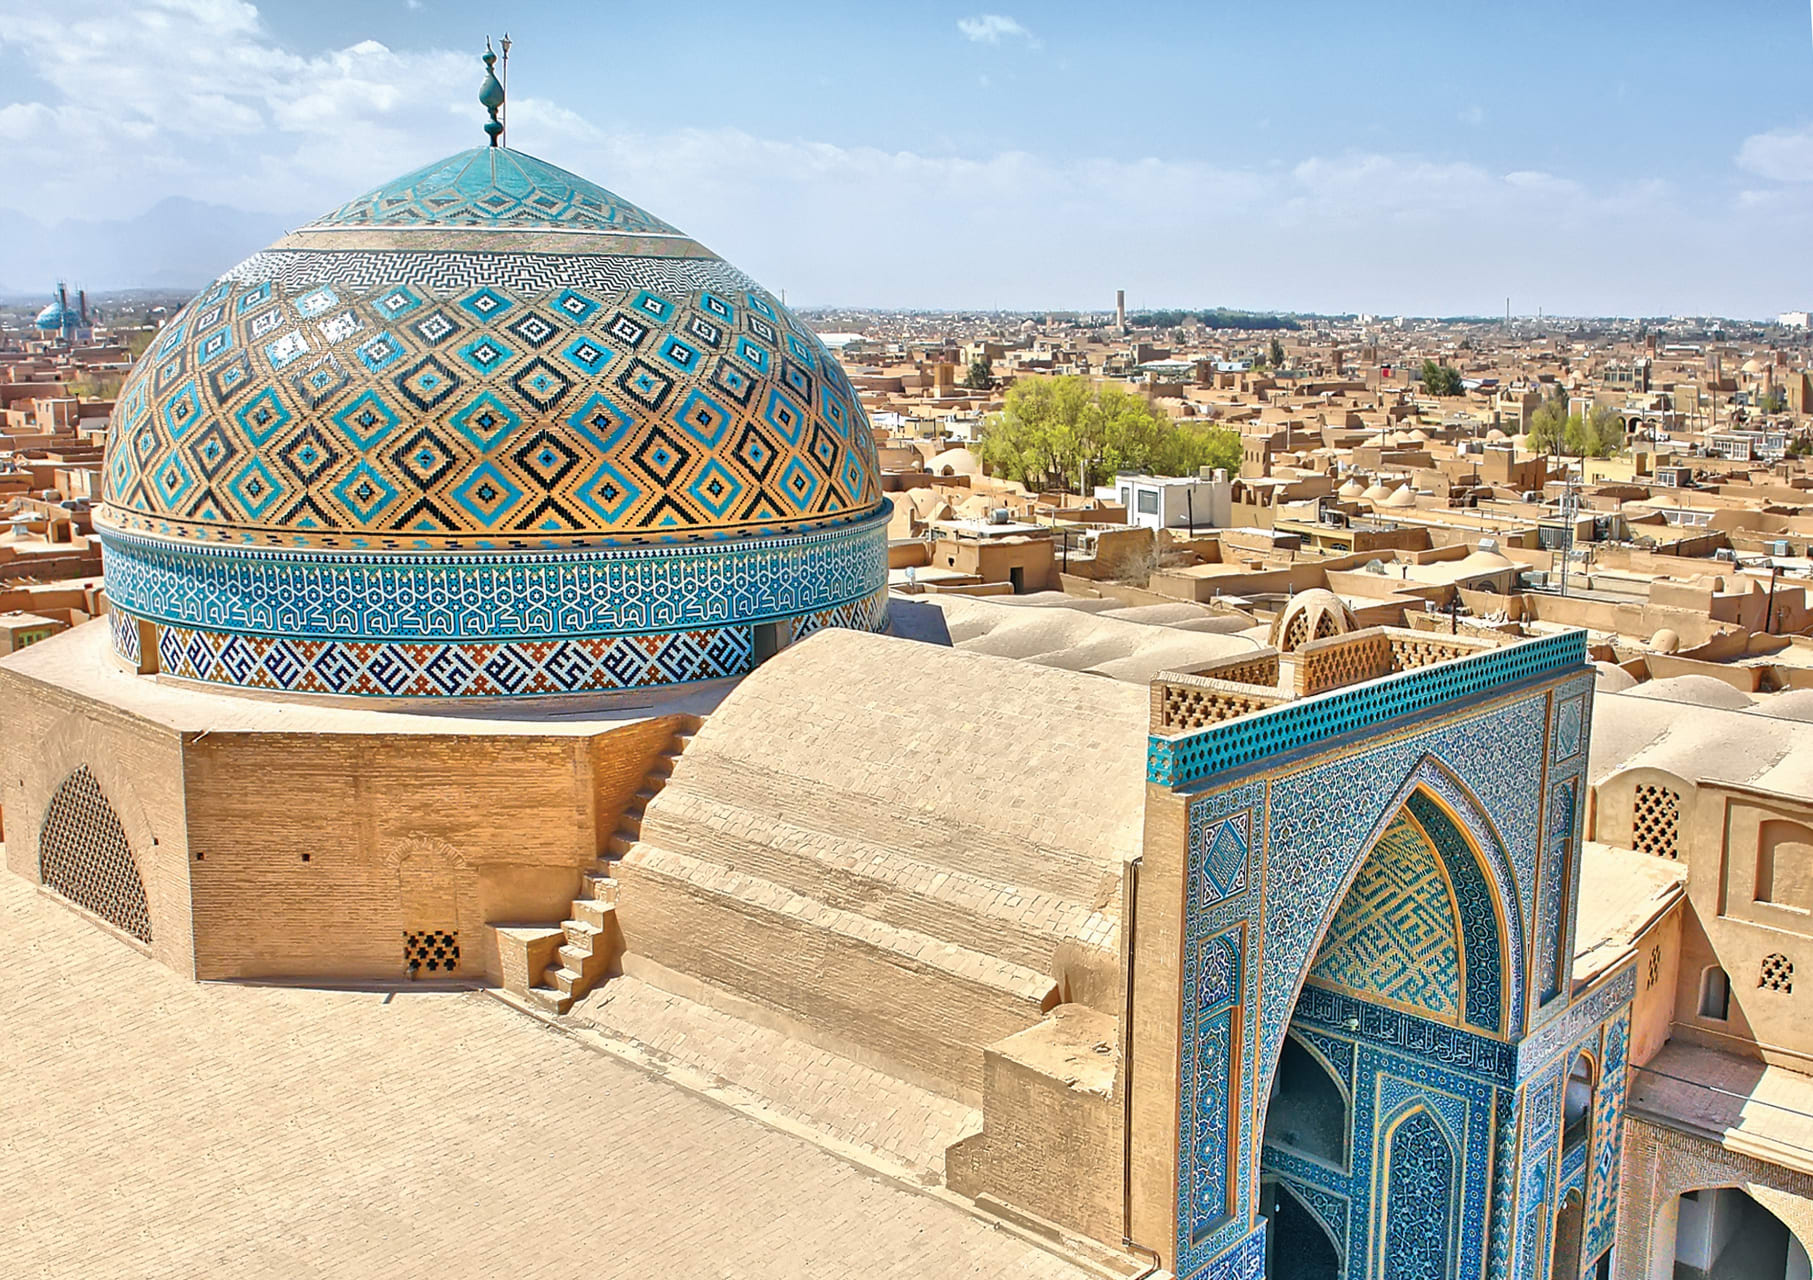 Yazd cover image